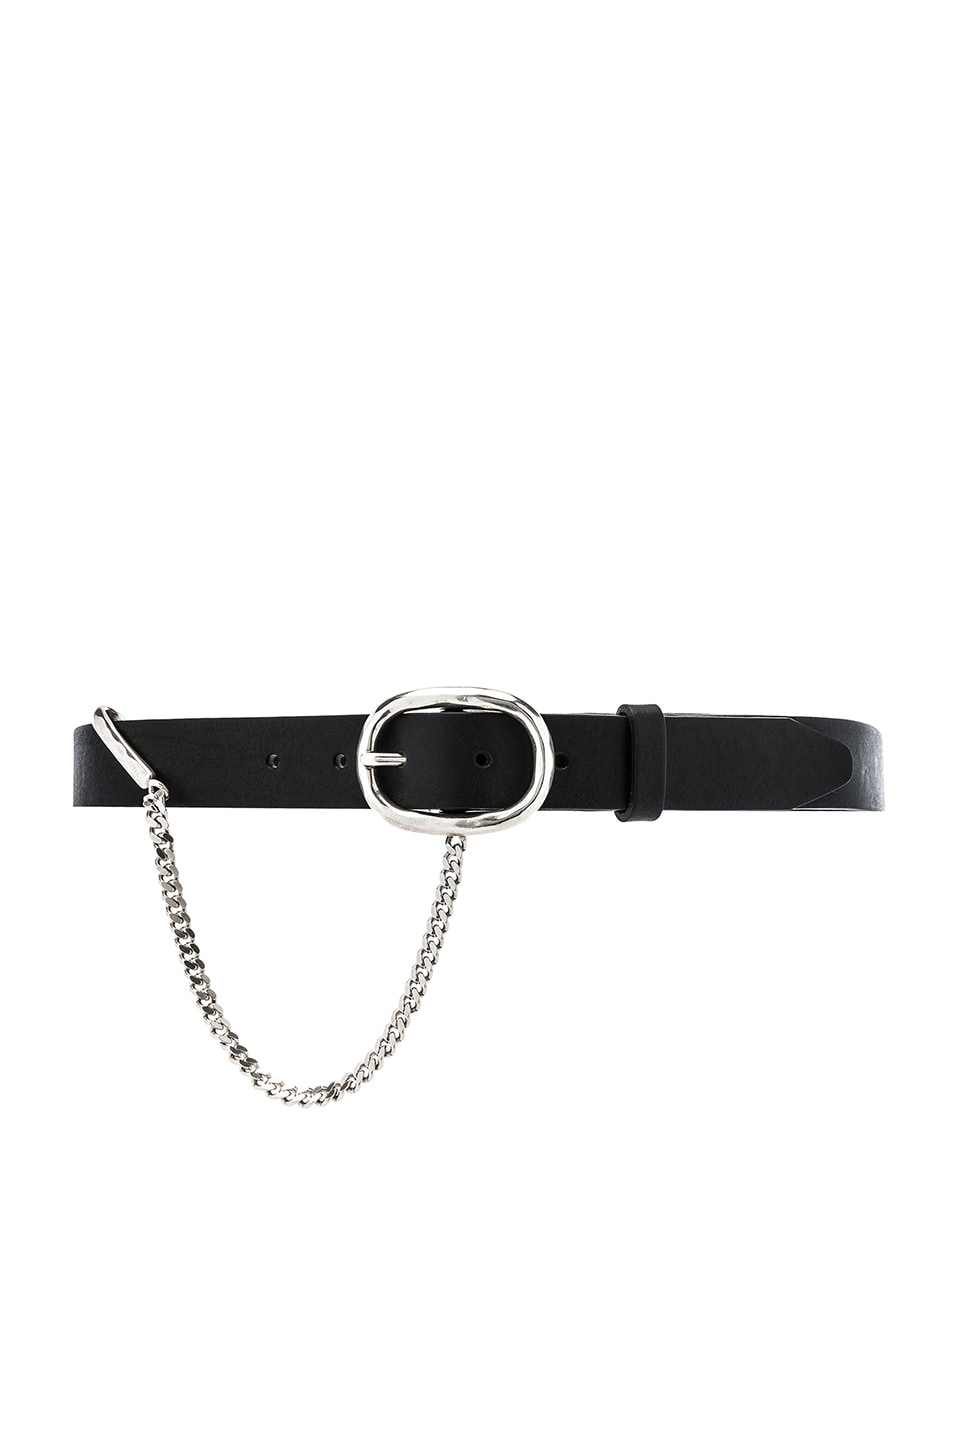 Rag & Bone Belts RAG & BONE 30MM BOYFRIEND BELT WITH CHAIN IN BLACK